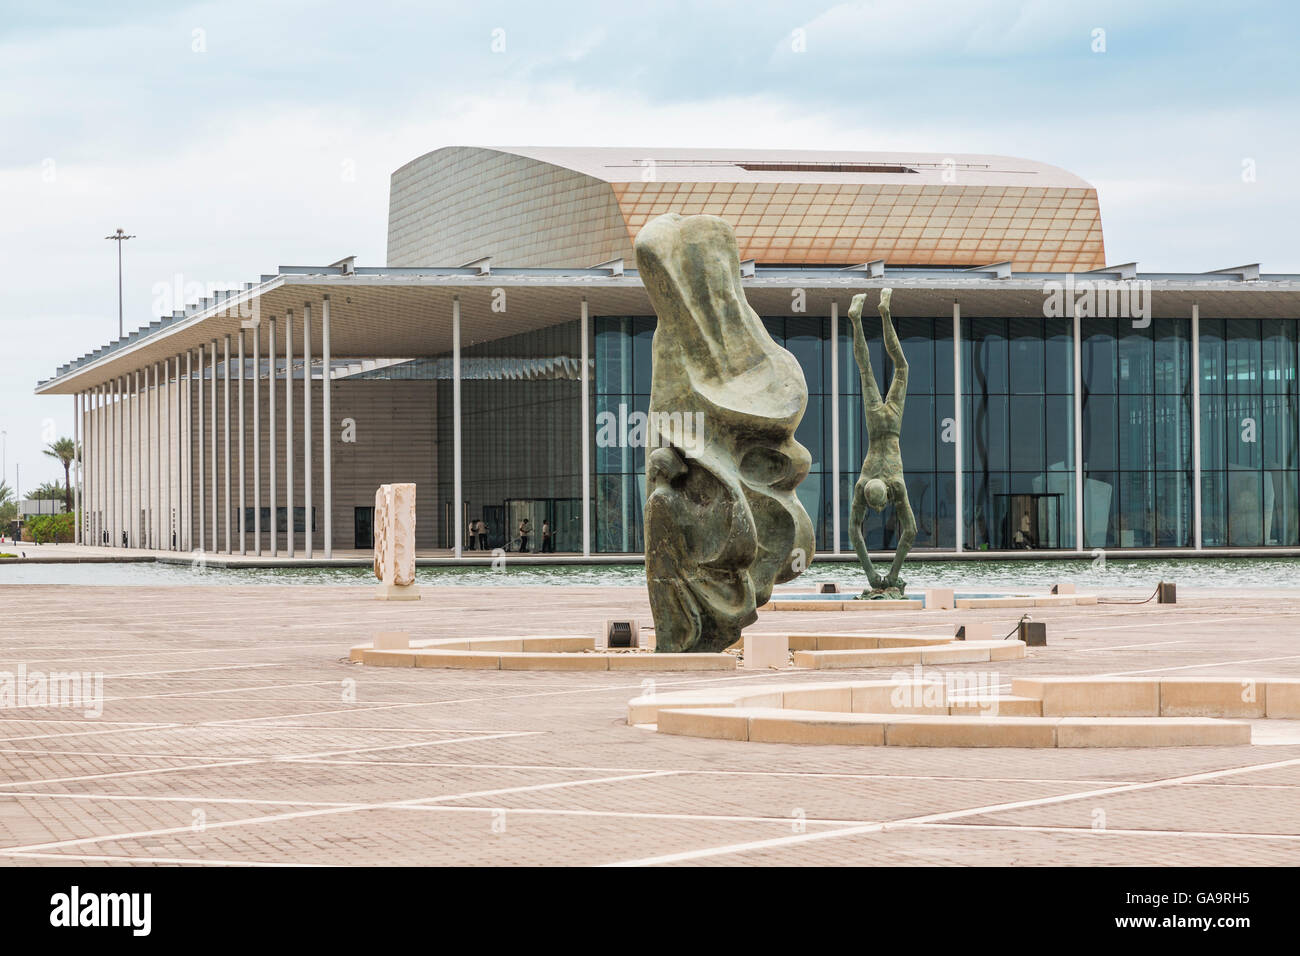 The National Theatre of Bahrain, Manama, Bahrain - Stock Image